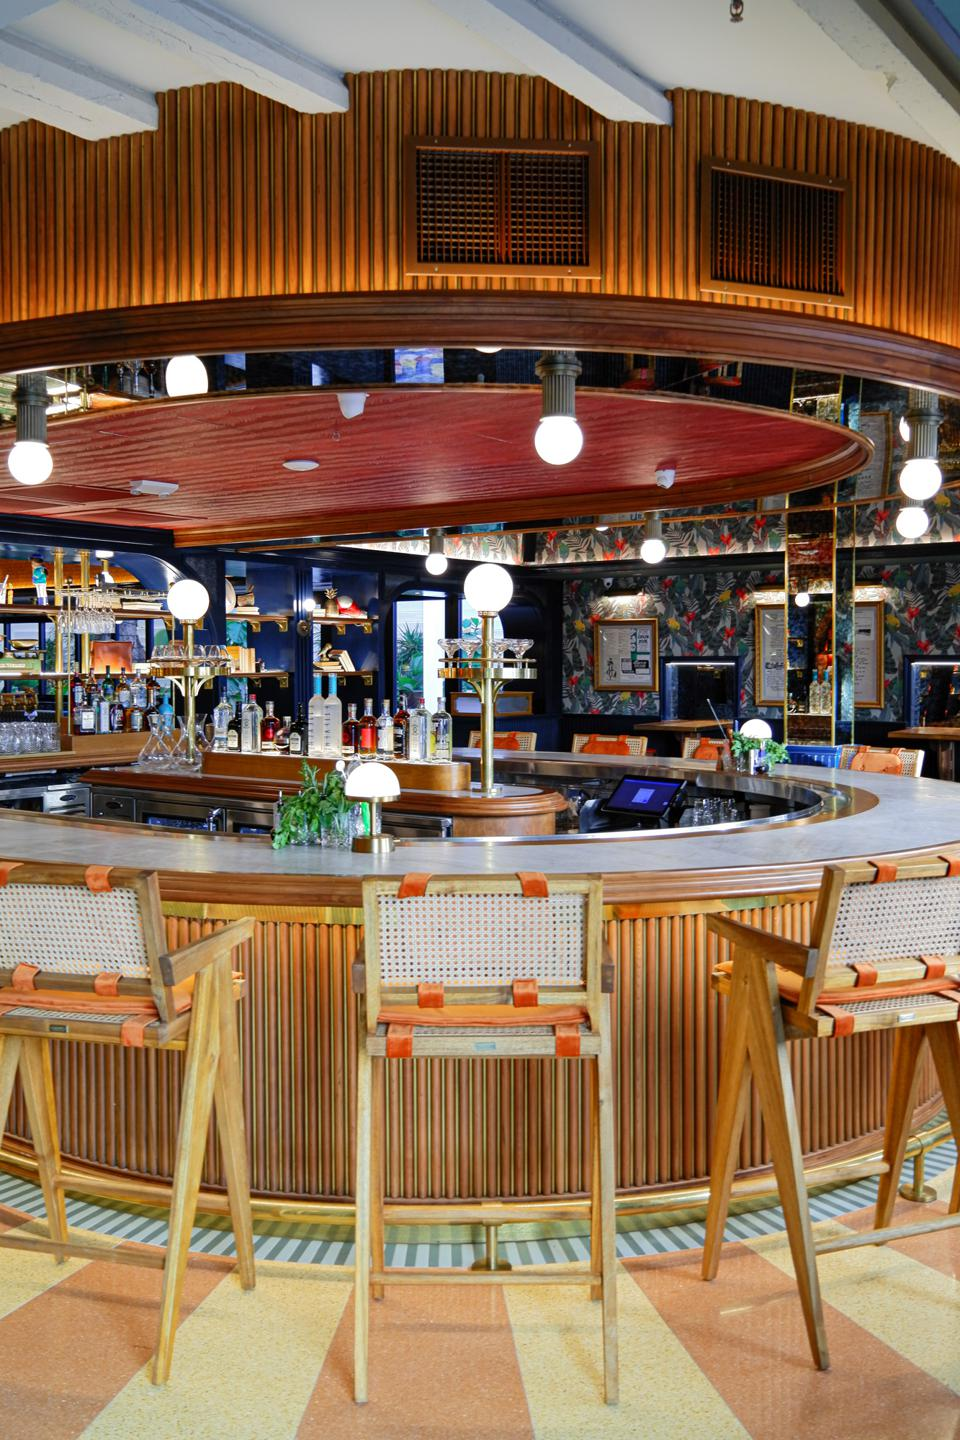 MIAMI, FL - The Main Bar at Red Rooster Overtown by Marcus Samuelsson